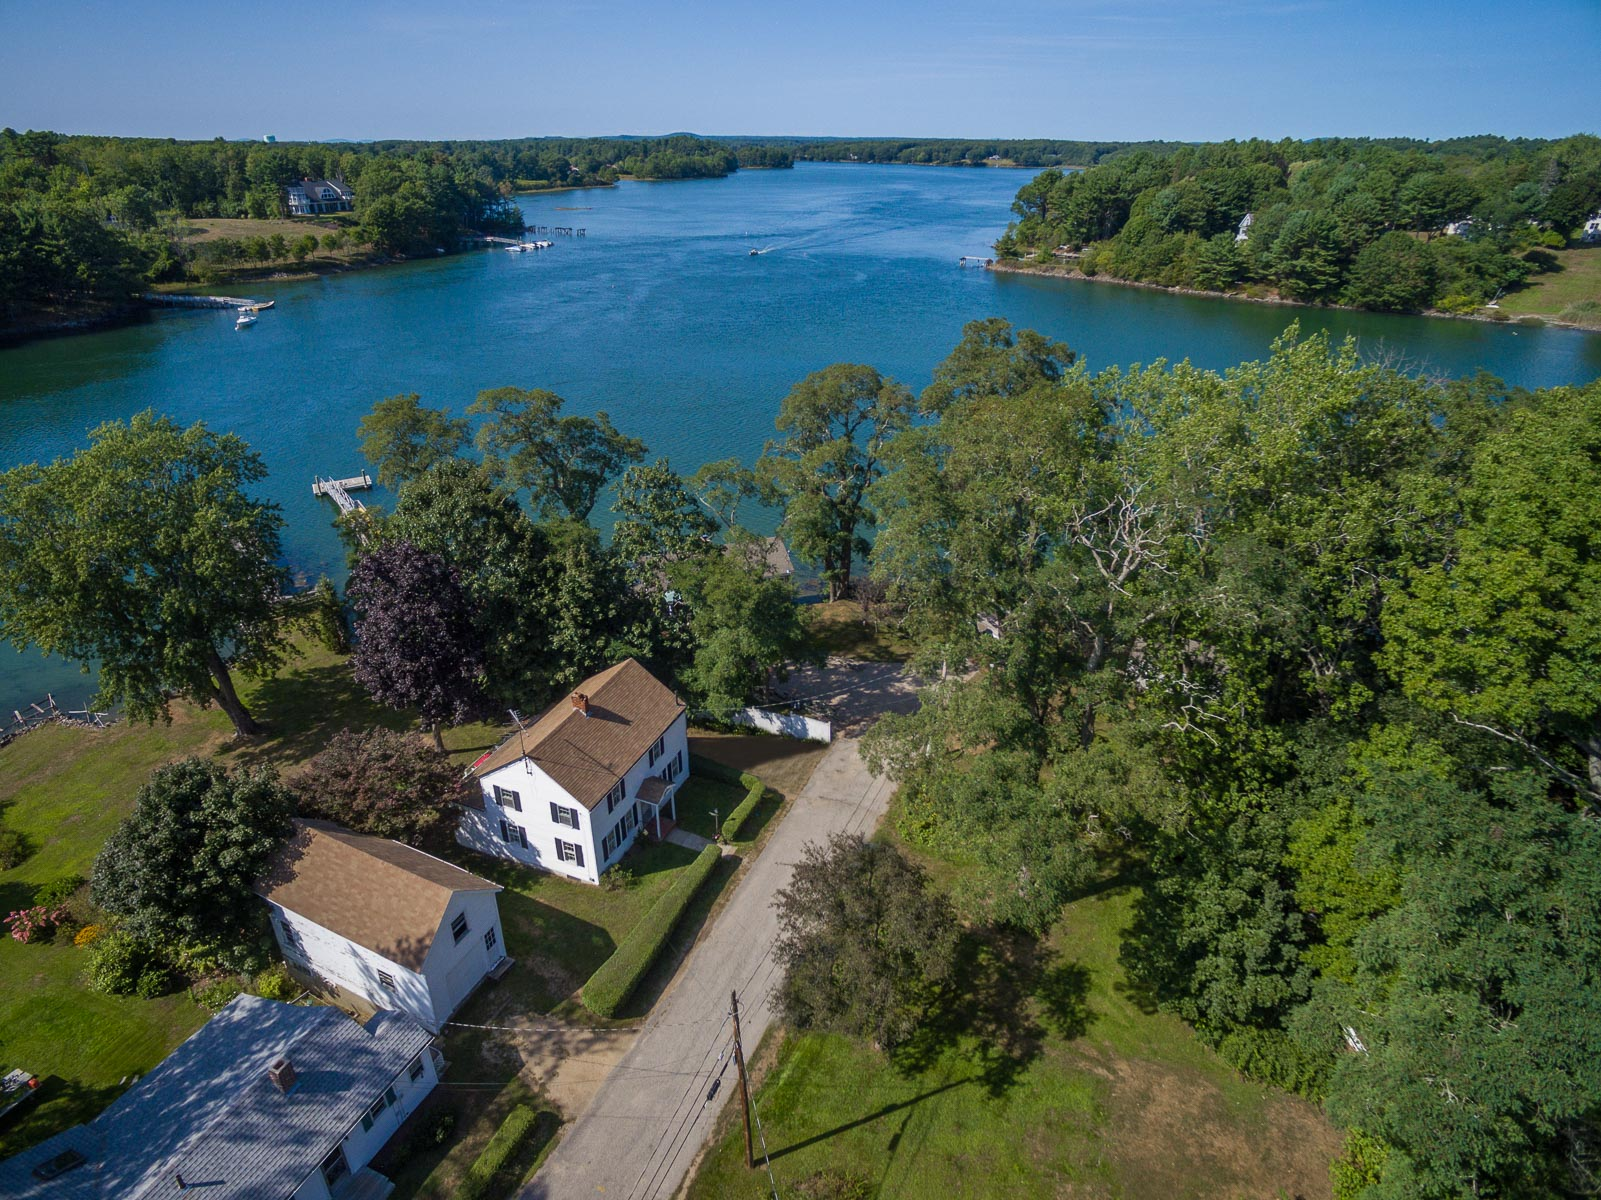 Single Family Home for Sale at Spruce Creek Waterfront 9 Duncan Way Kittery Point, Maine 03904 United States